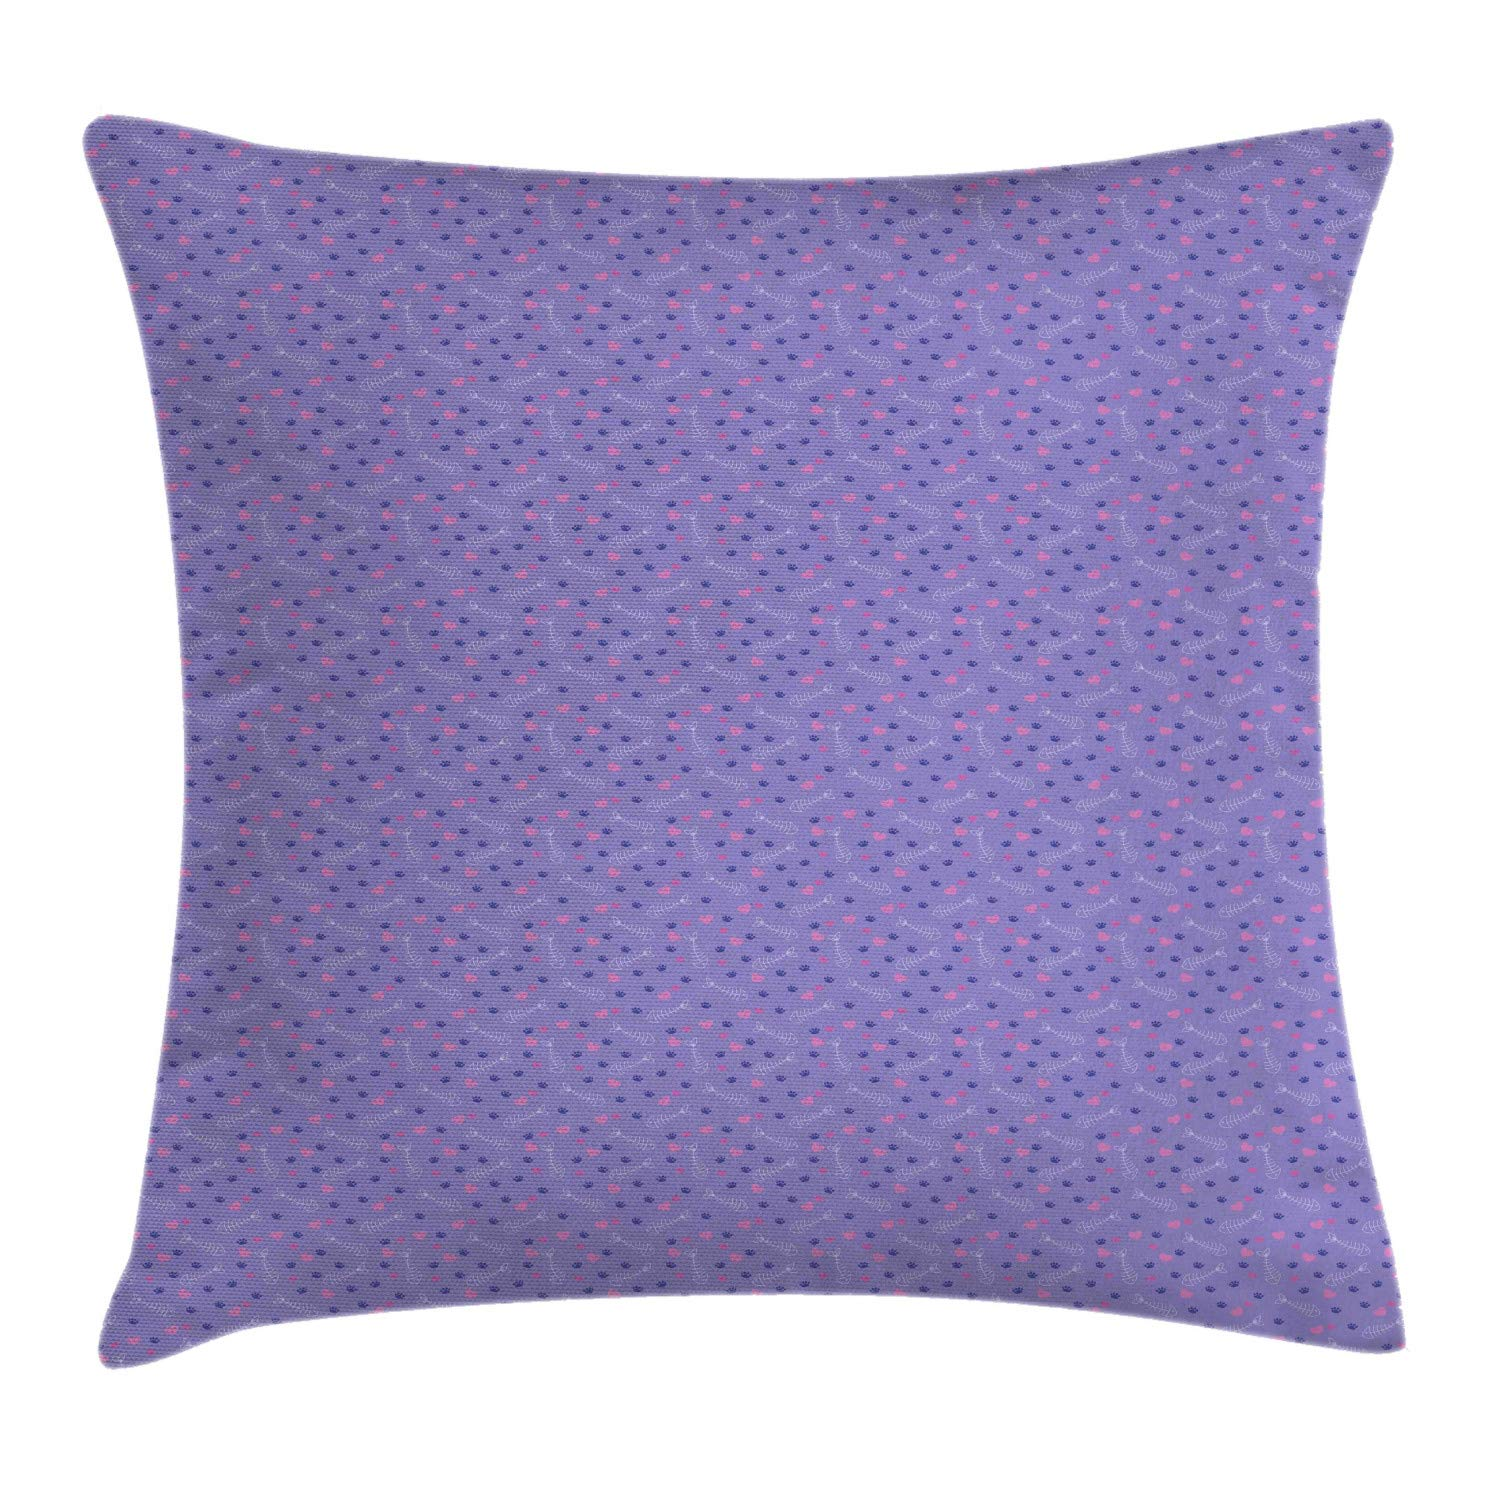 Lunarable Animal Print Throw Pillow Cushion Cover, Pattern with Cat Tracks Fish Bones and Hearts Kids Nursery, Decorative Square Accent Pillow Case, 26'' X 26'', Violet Pink Dark Blue White by Lunarable